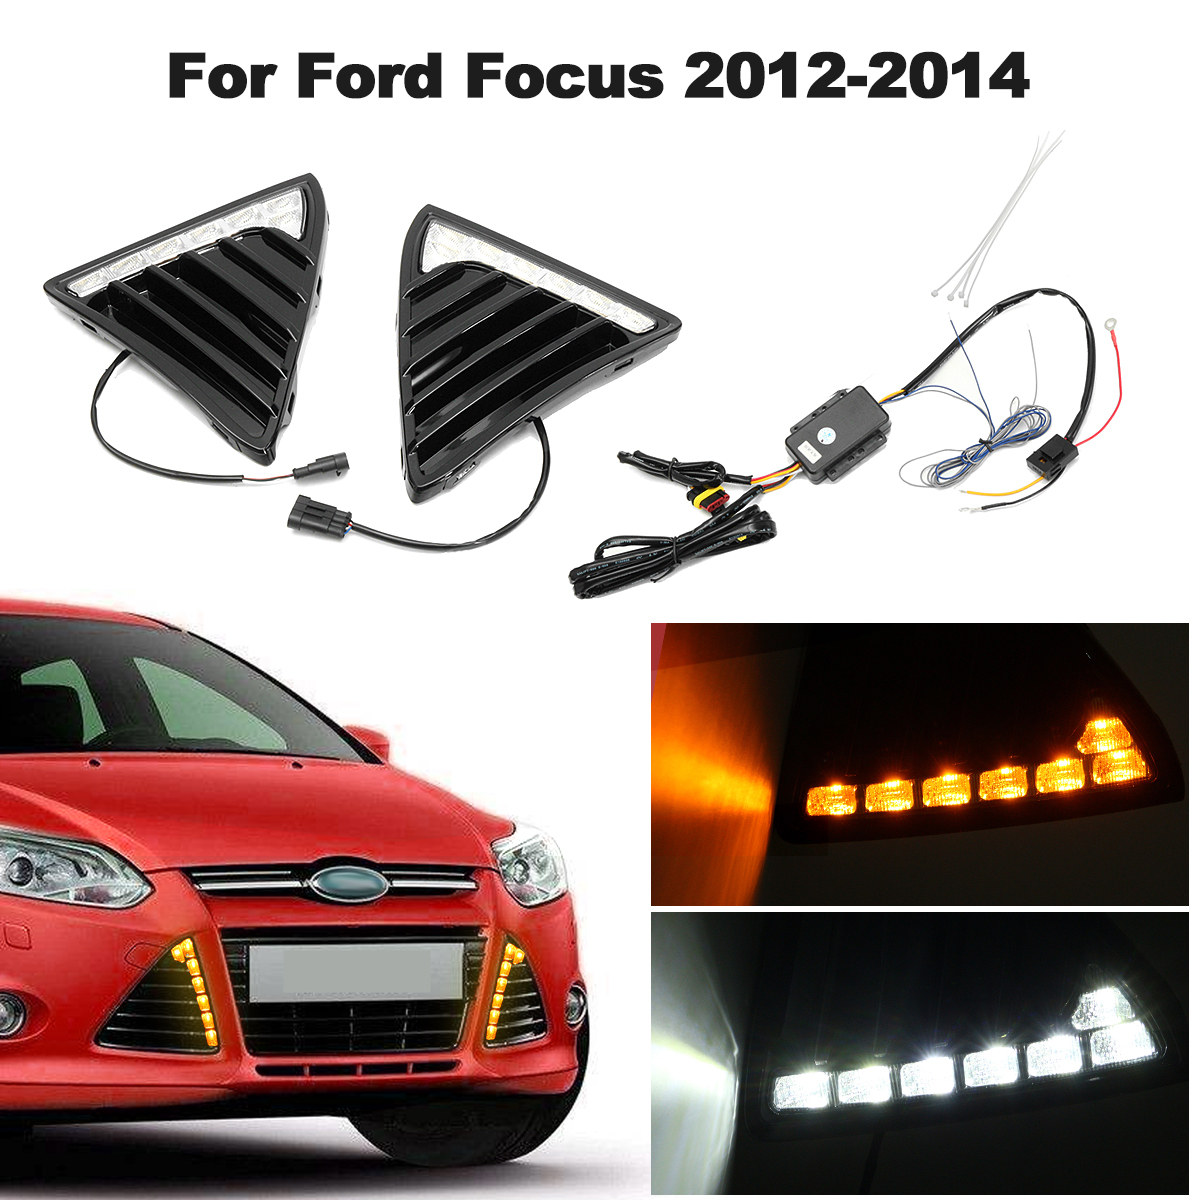 For Ford for Focus 2011 2012 2013 2014 Pair 12V Car LED Daytime Running Light Fog Lamp DRL Waterproof White Light New ecahayaku 1set 12v waterproof daytime running light drl fog lamp with fog hole for ford focus hatchback 2009 2010 2011 2012 2013